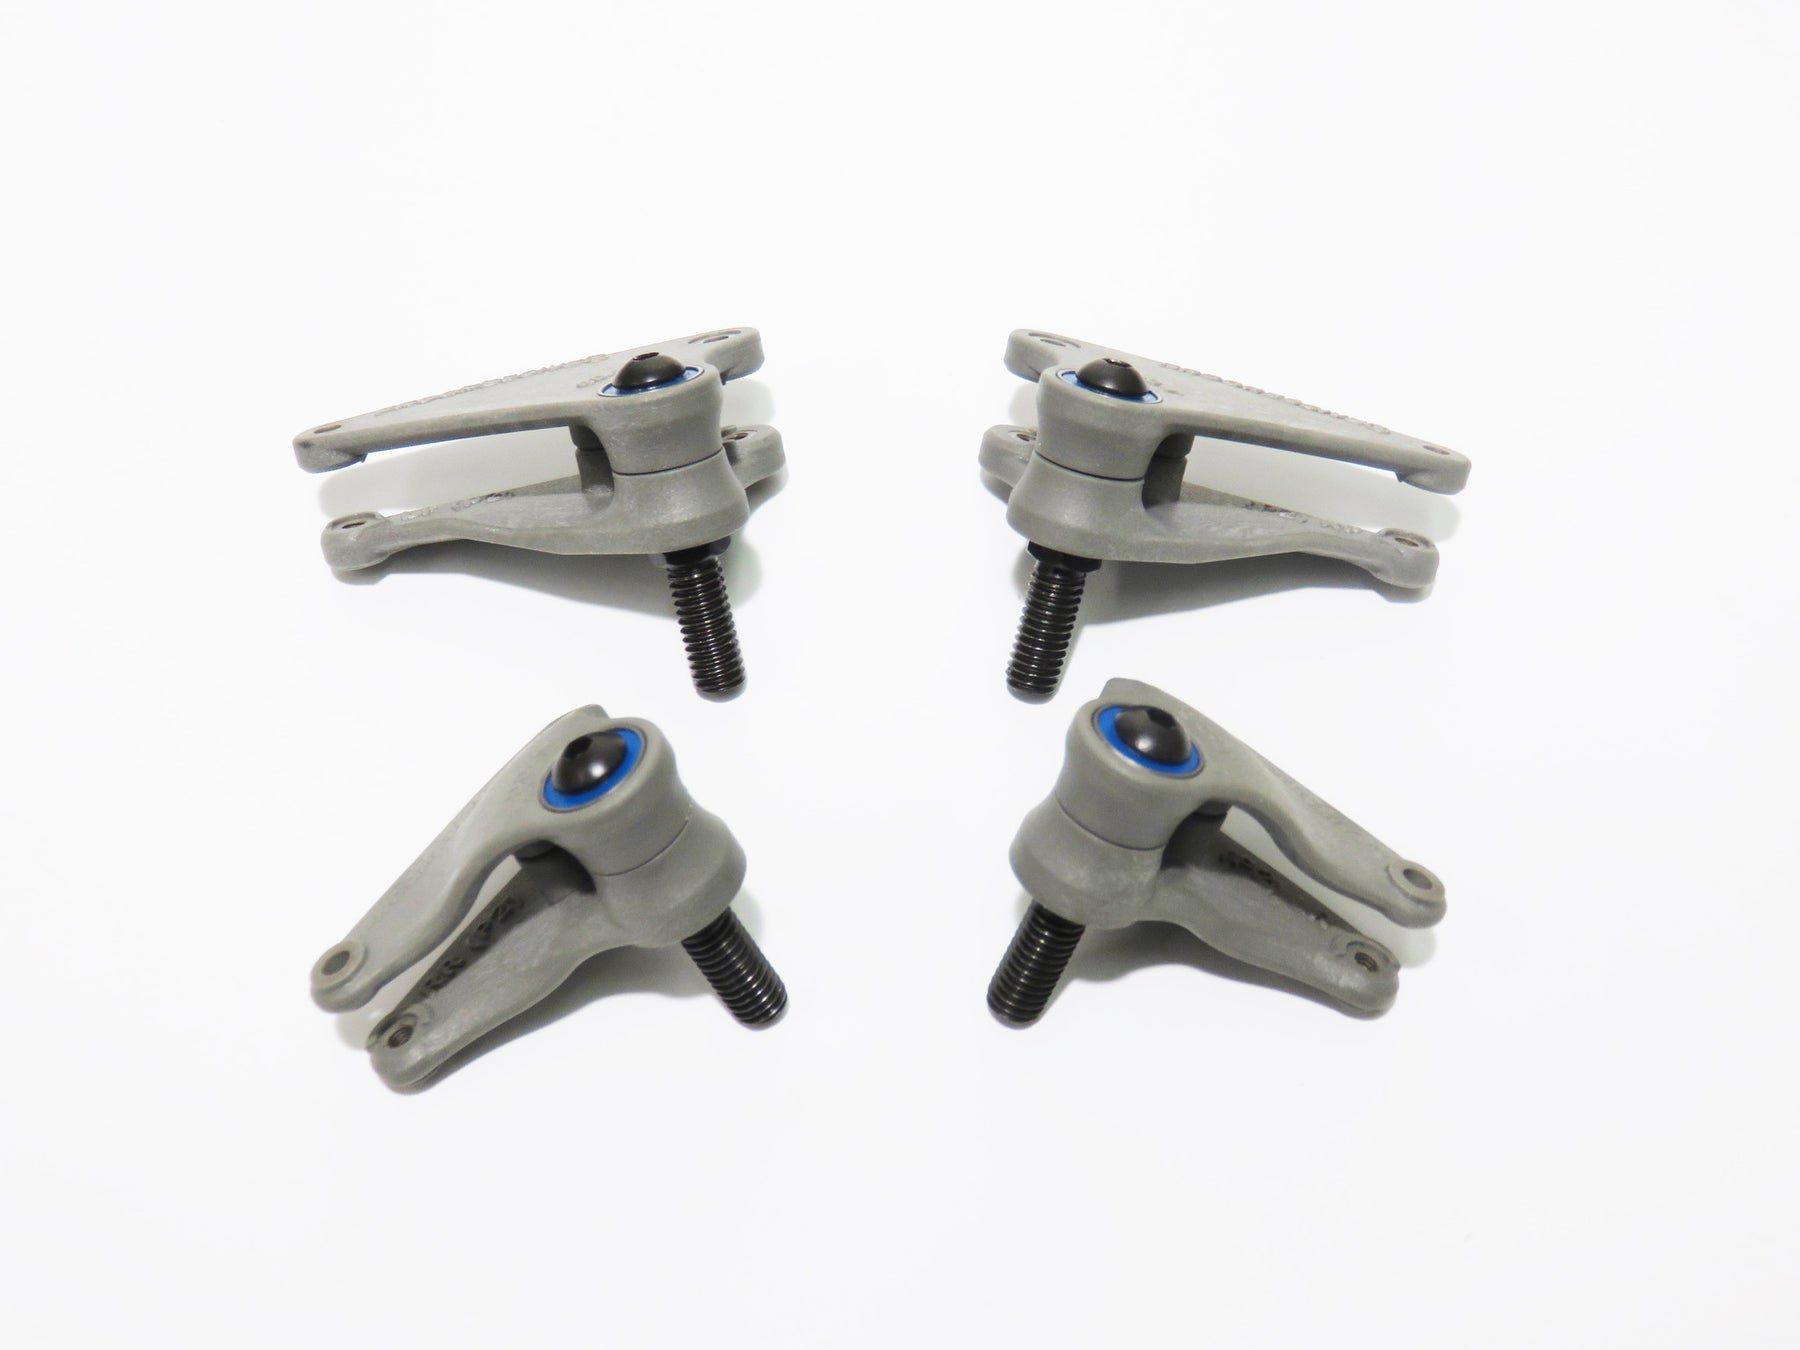 Traxxas Slayer Pro 4x4 Front & Rear Progressive 2 Rocker Arm Set With Posts